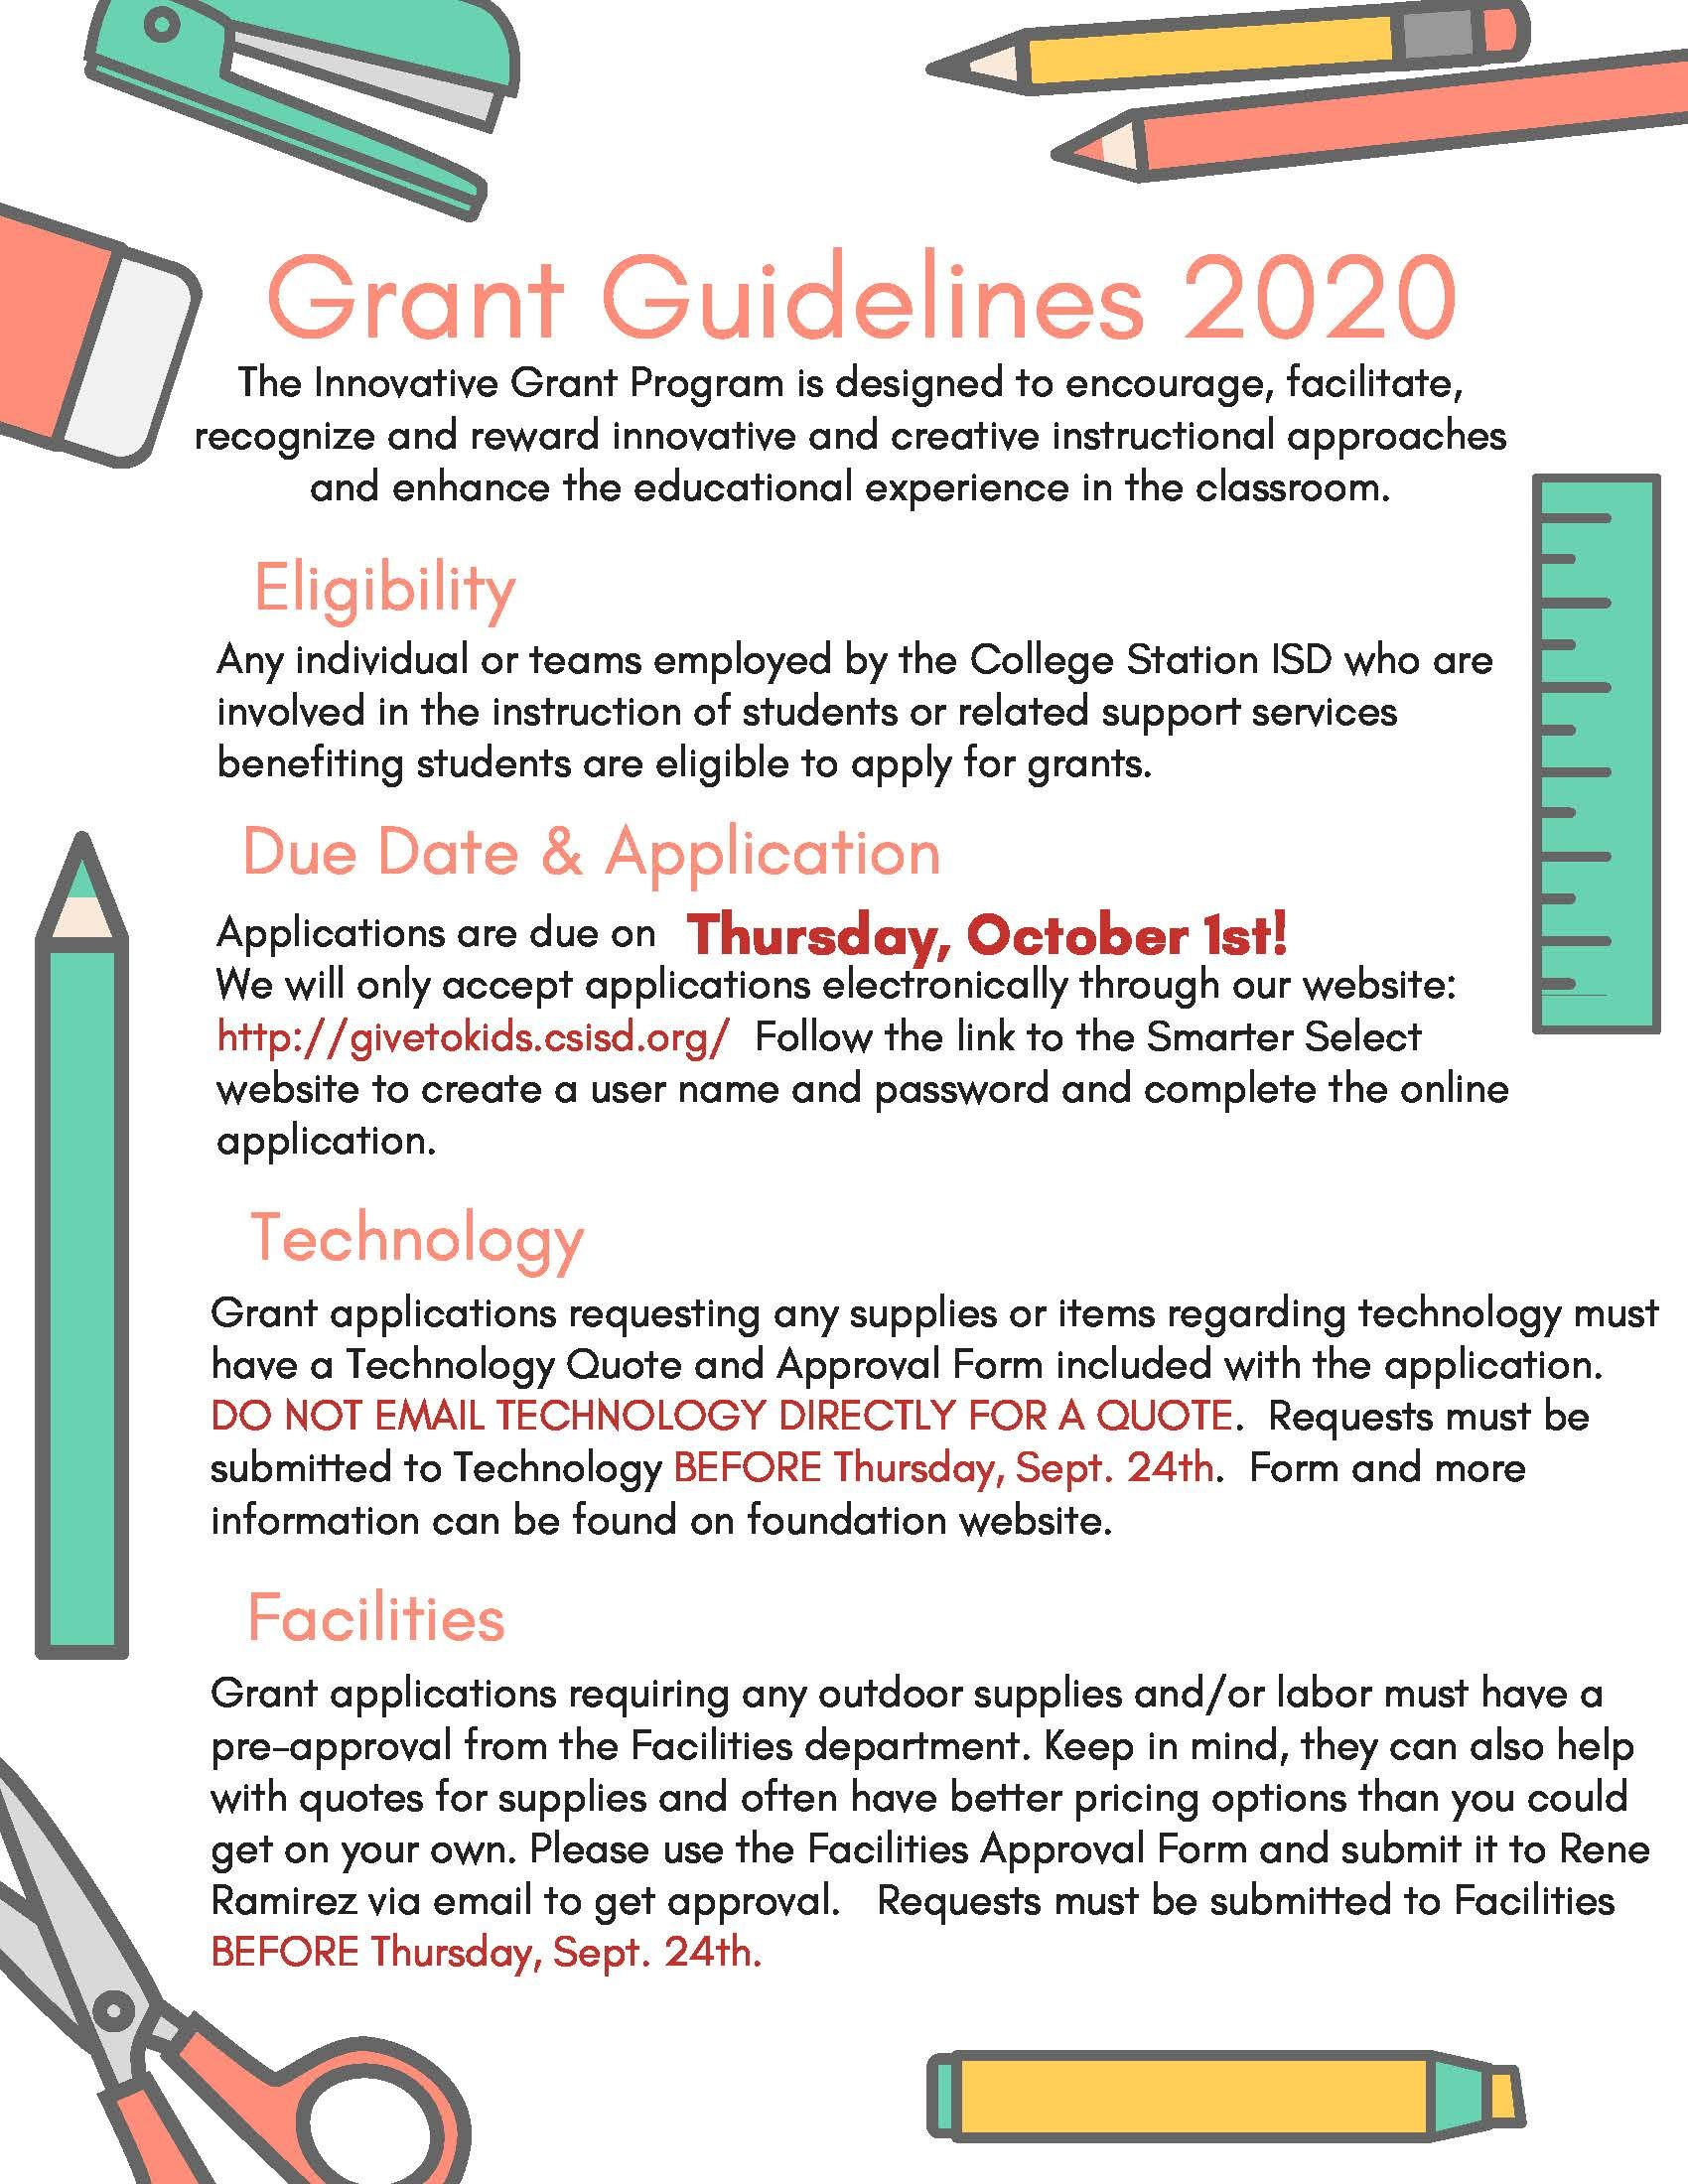 Grant Guidelines 2020